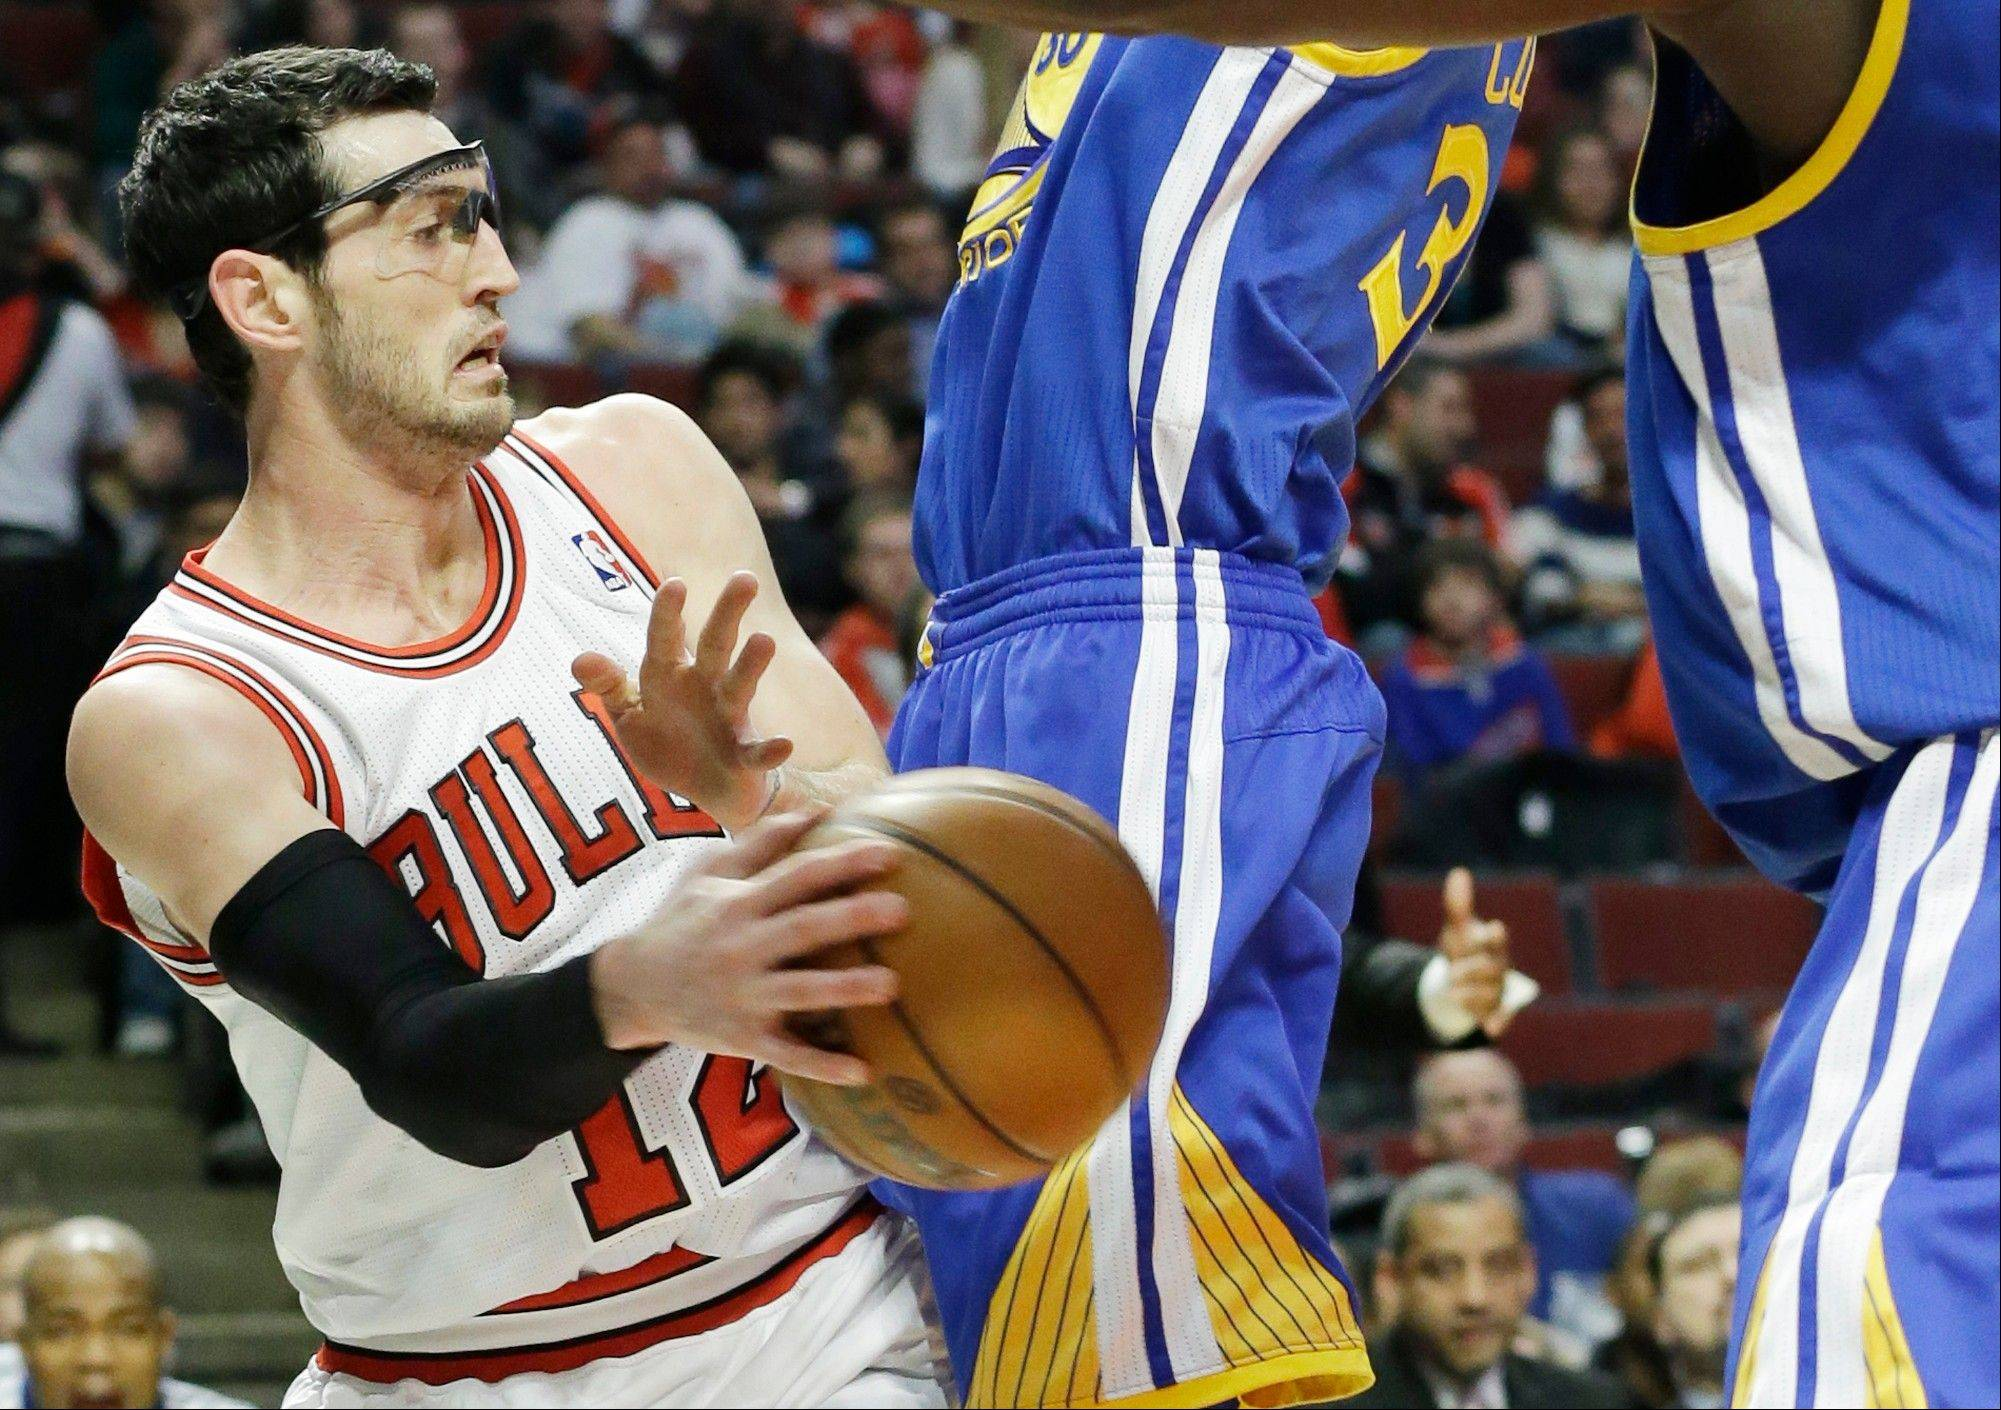 Kirk Hinrich scored a season-high 25 points, hitting six of seven three-pointers in the Bulls' 103-87 victory over the Golden State Warriors on Friday night.